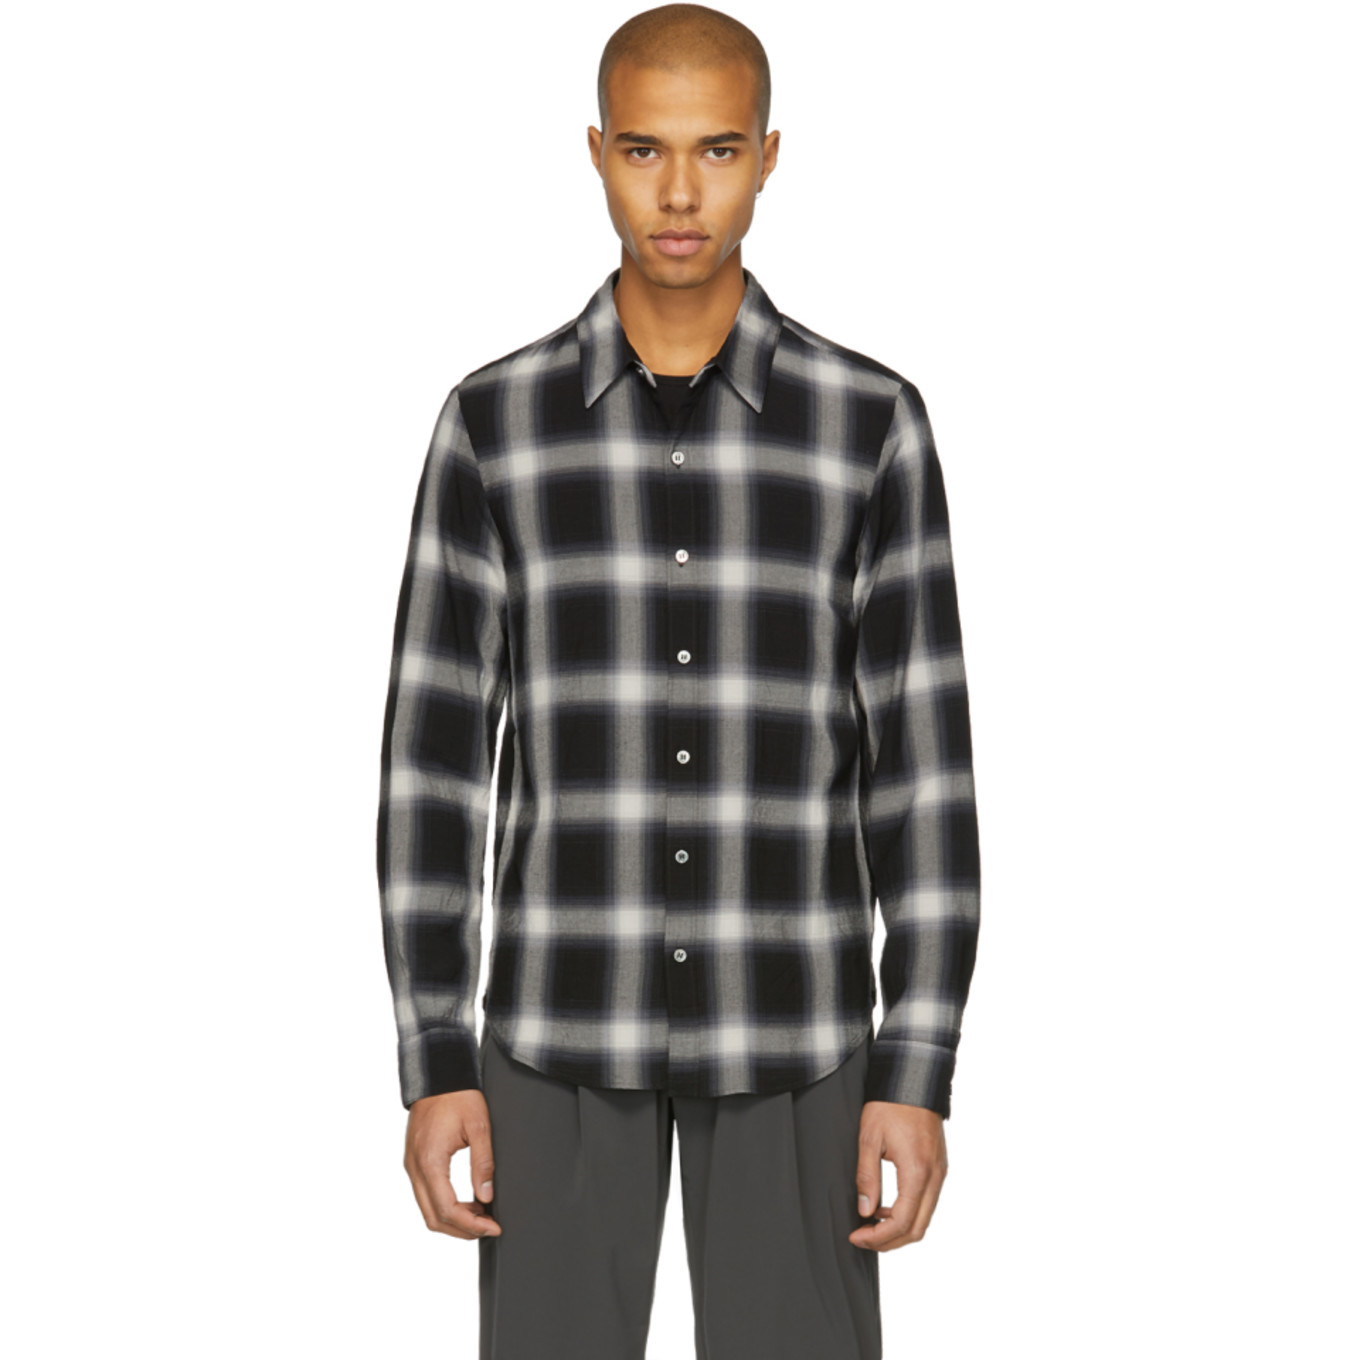 Black Check Shirt by Attachment